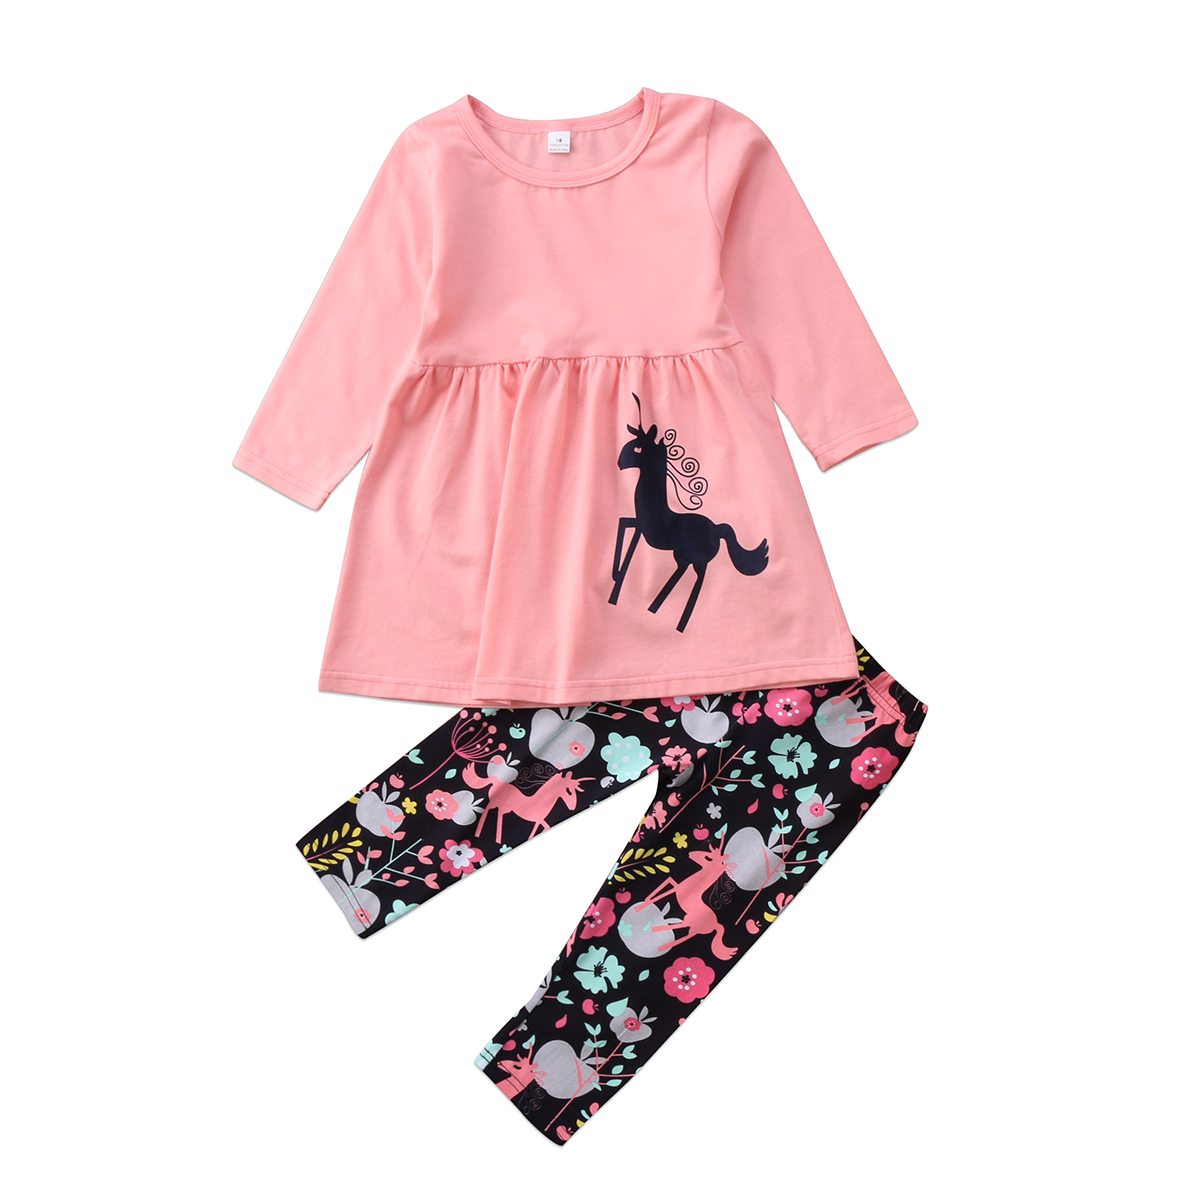 Lovely Toddler Kid Baby Girl Unicorn Tops Long Sleeve Dress Floral Pants Outfits Set Clothes 2019